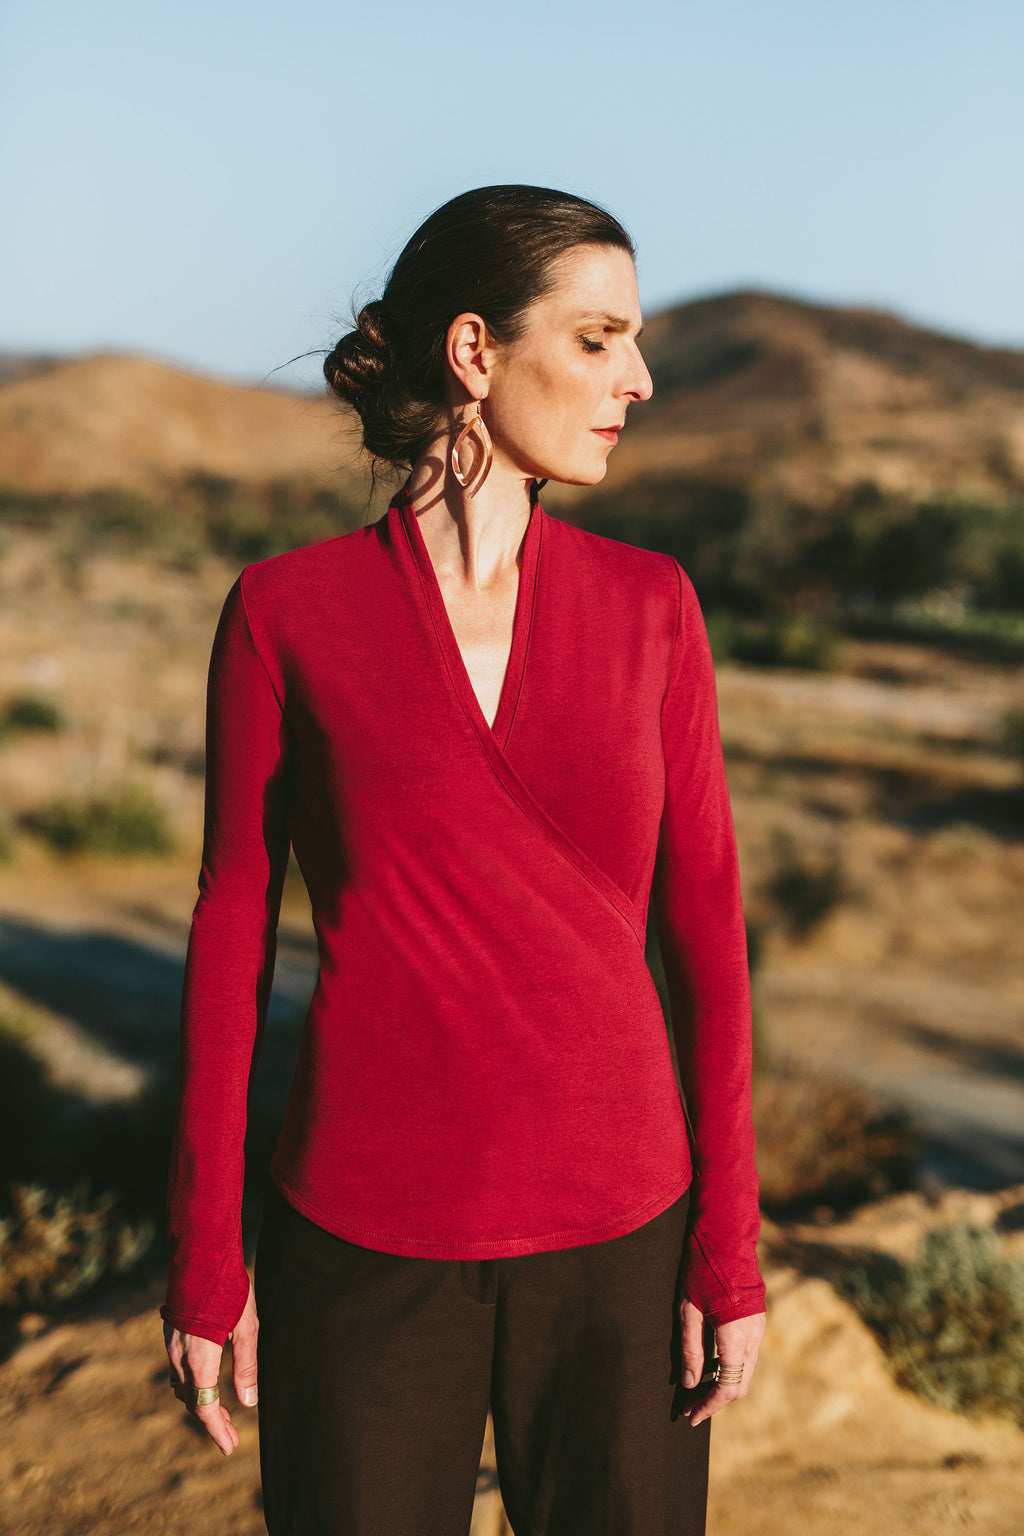 The Soy Jersey Wrap Top